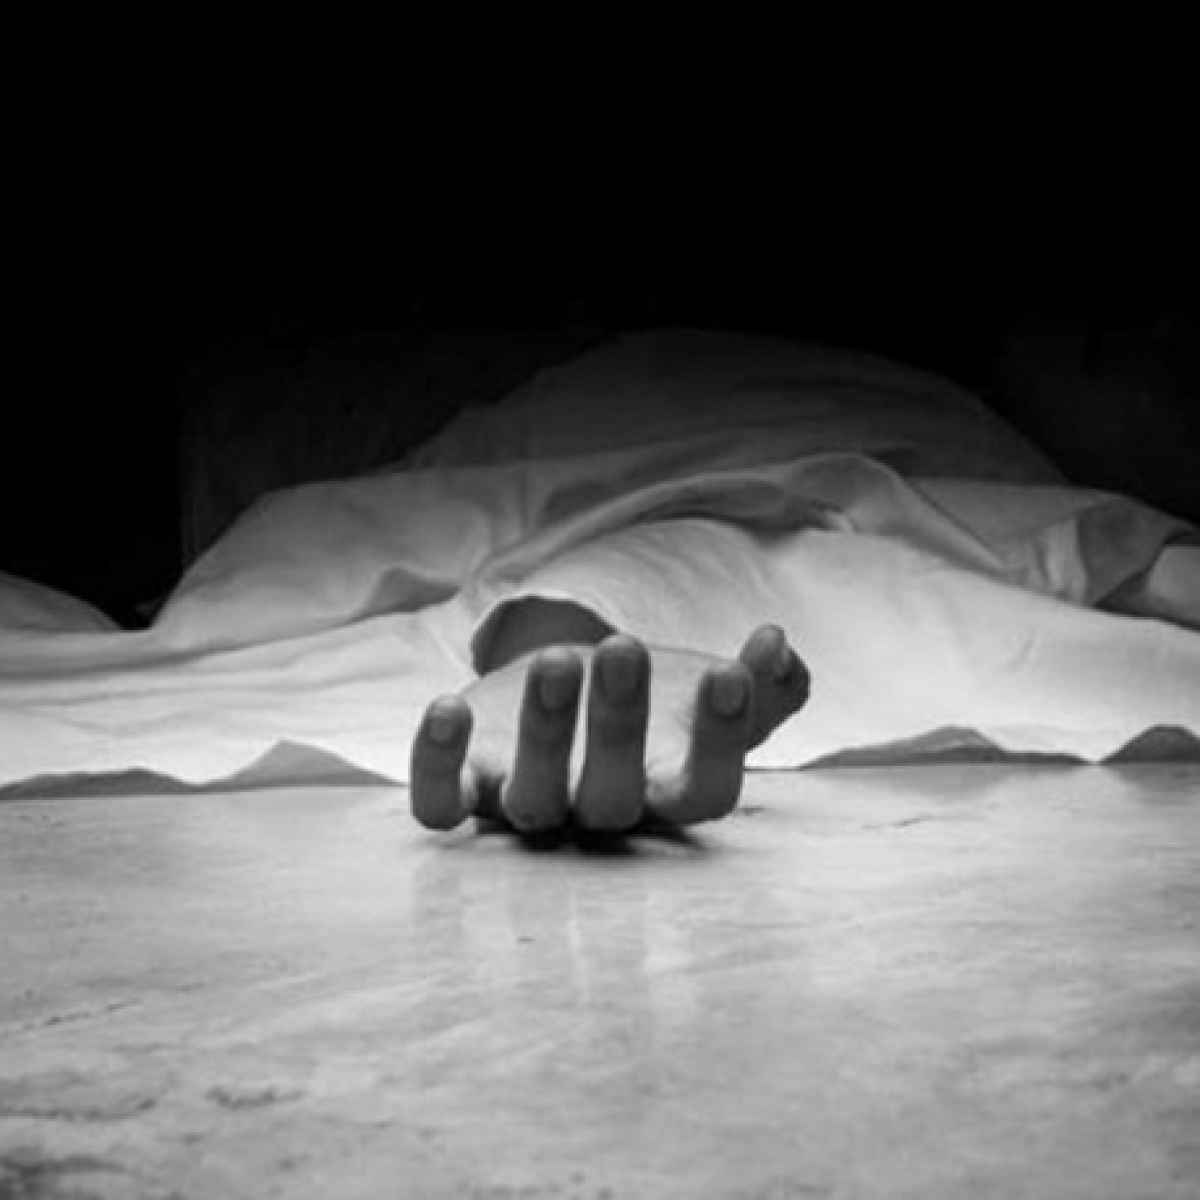 Maharashtra: 24-year-old college lecturer set ablaze by stalker dies during treatment